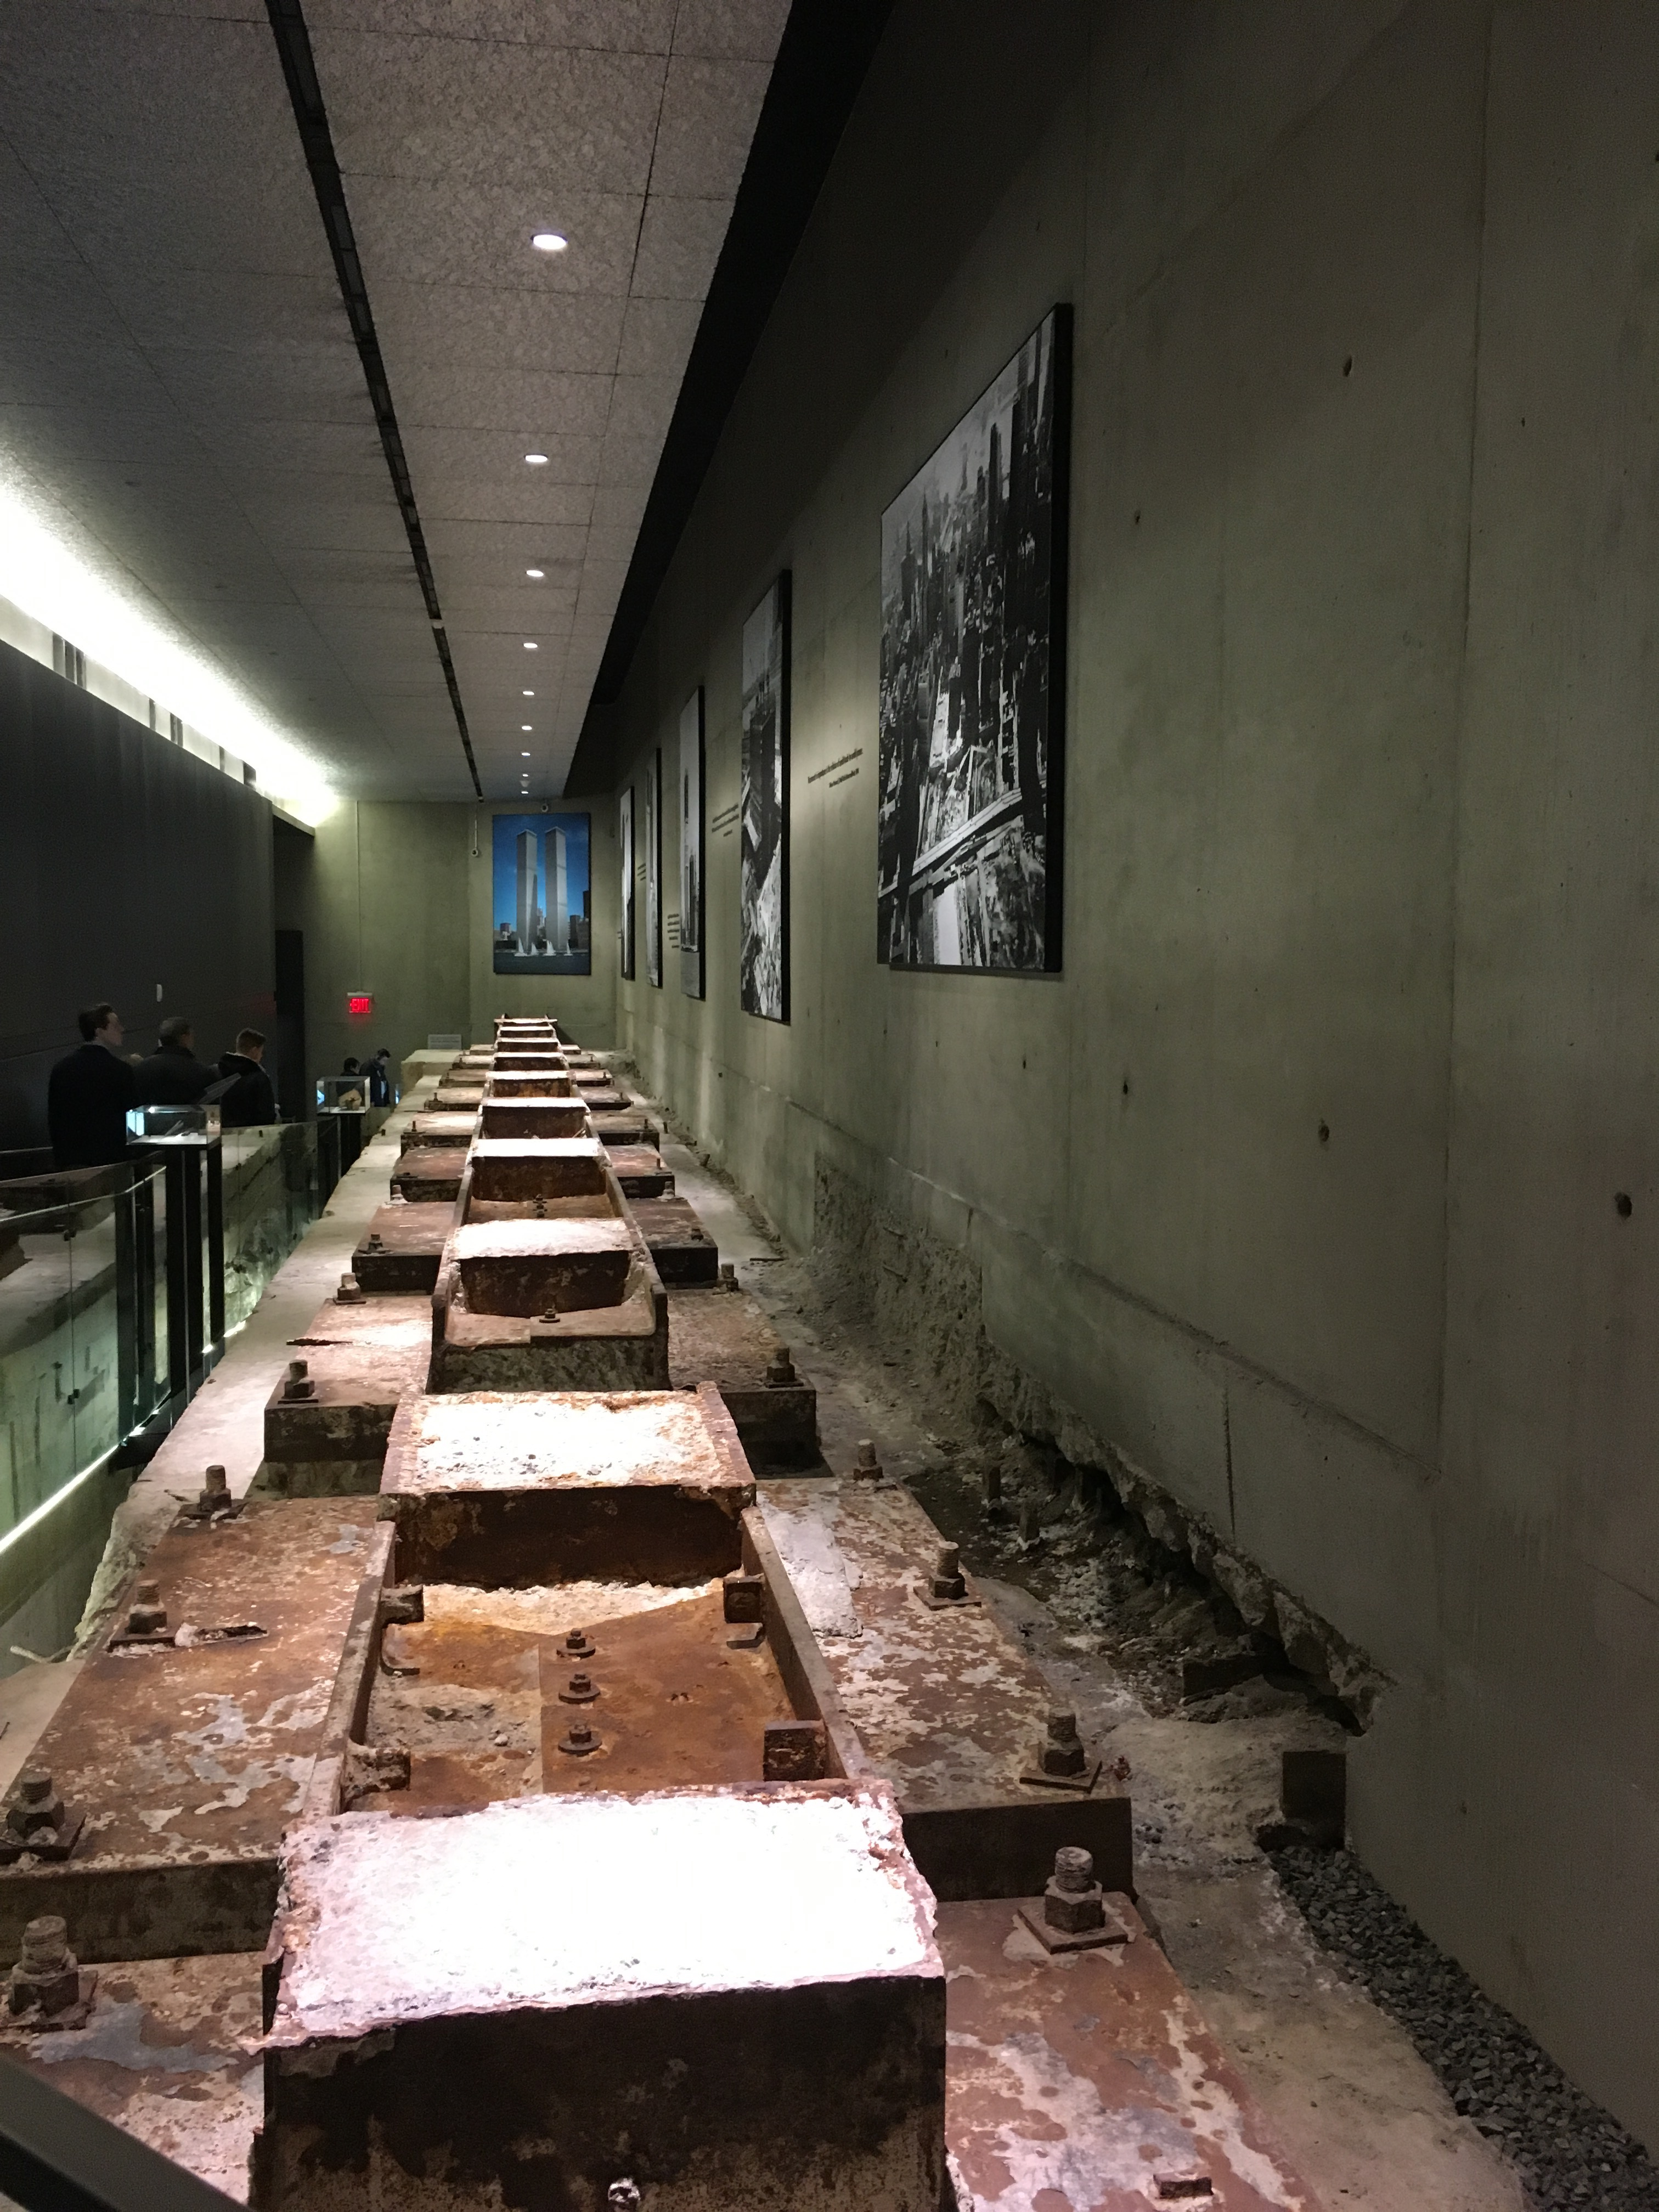 Ground Zero Over 15 Years Later 9 11 Memorial And Museum